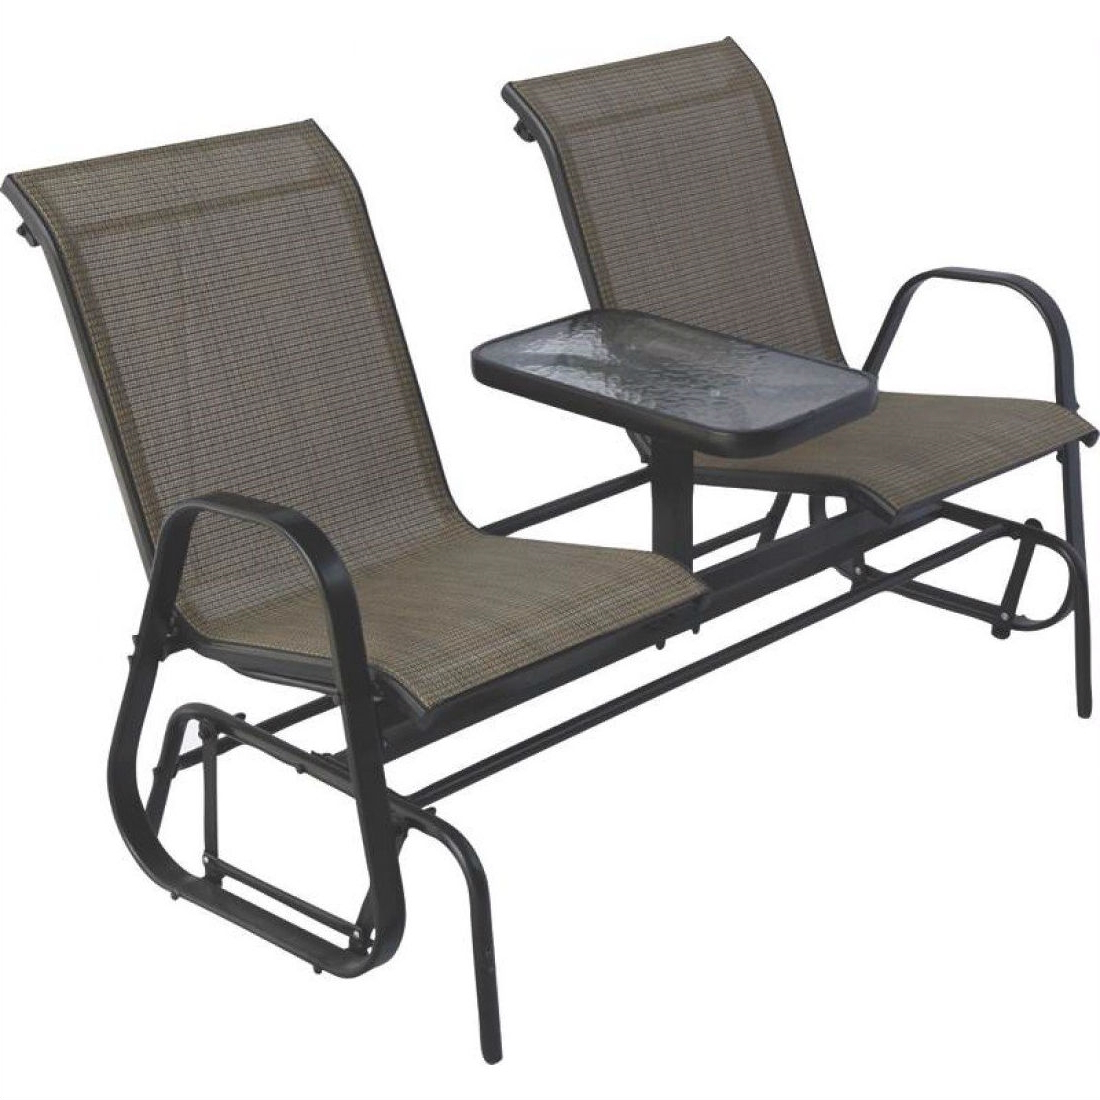 Outdoor Patio Swing Glider Bench Chairs Intended For Newest 2 Person Outdoor Patio Furniture Glider Chairs With Console Table (View 23 of 25)